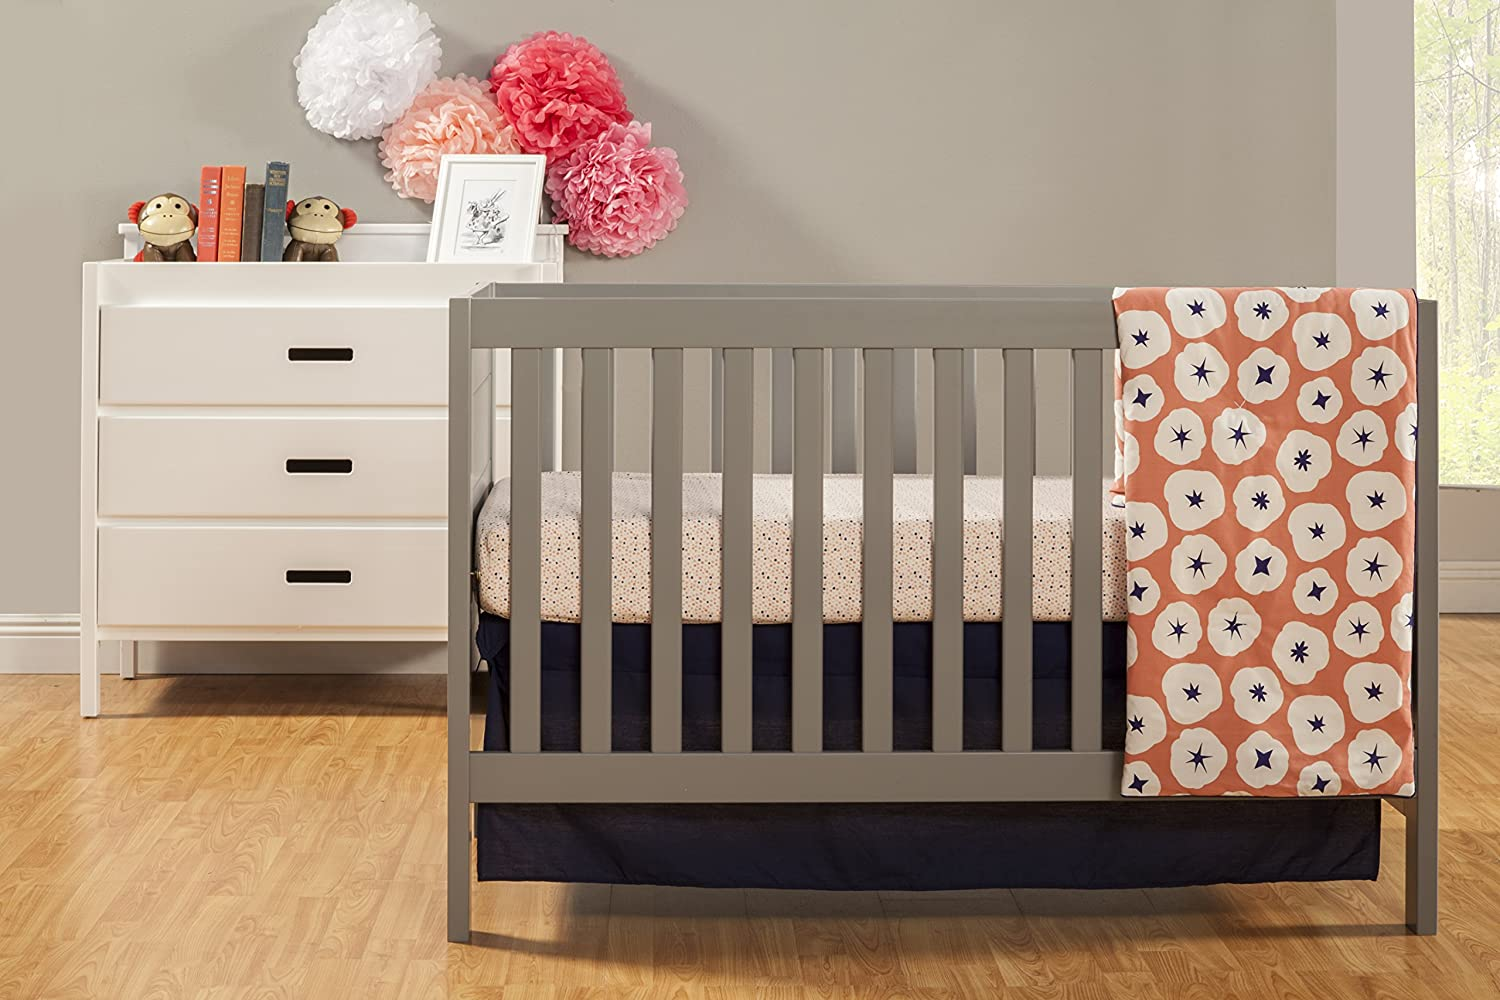 Amazon.com : Baby Mod Modena 3 In 1 Convertible Crib With Toddler Bed  Conversion Kit, Grey : Baby